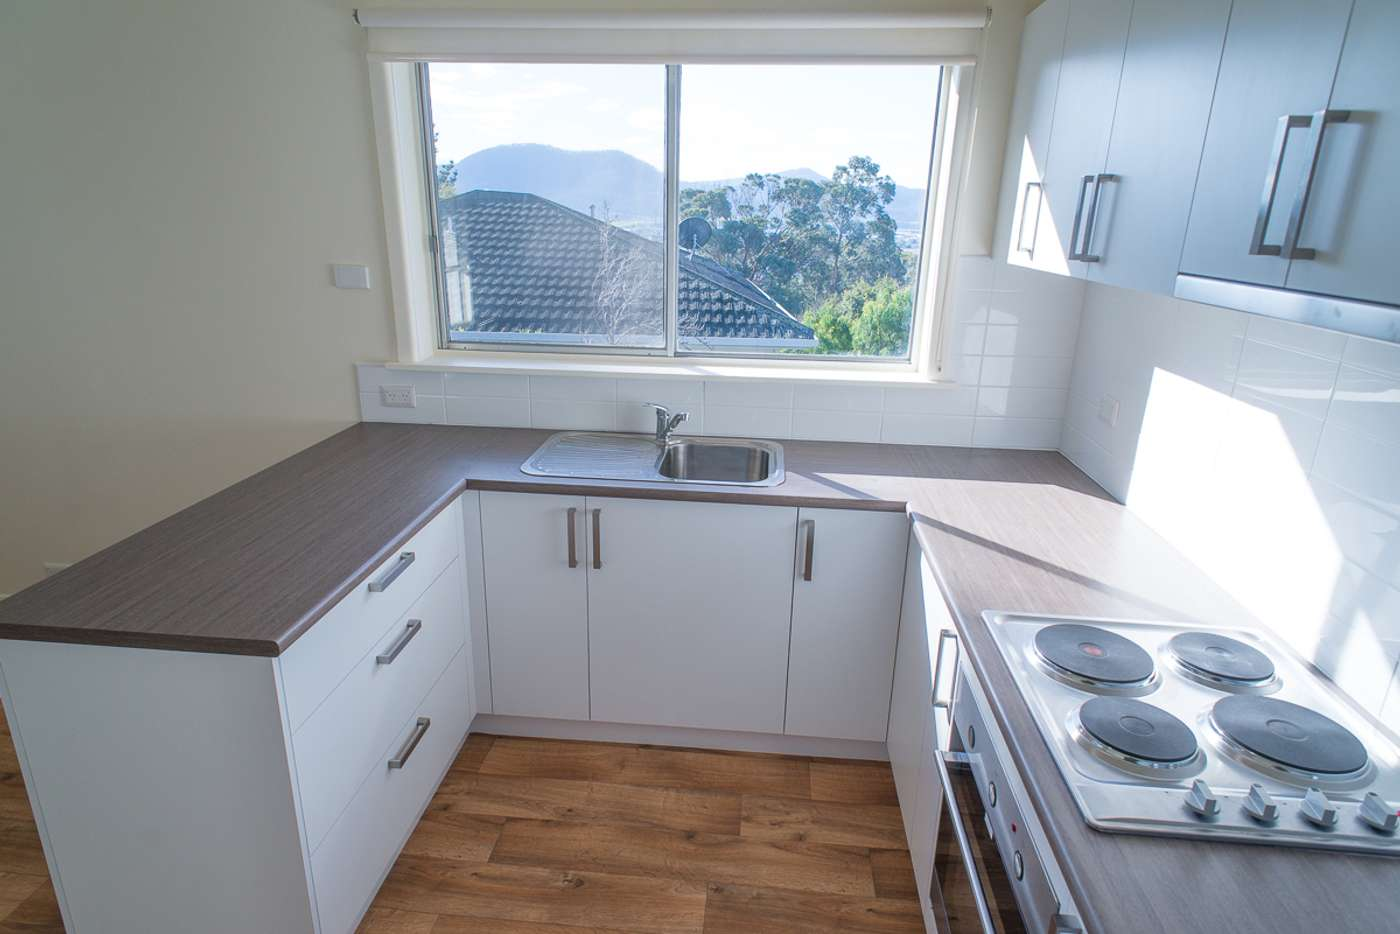 Main view of Homely apartment listing, 1/35 First Avenue, West Moonah TAS 7009